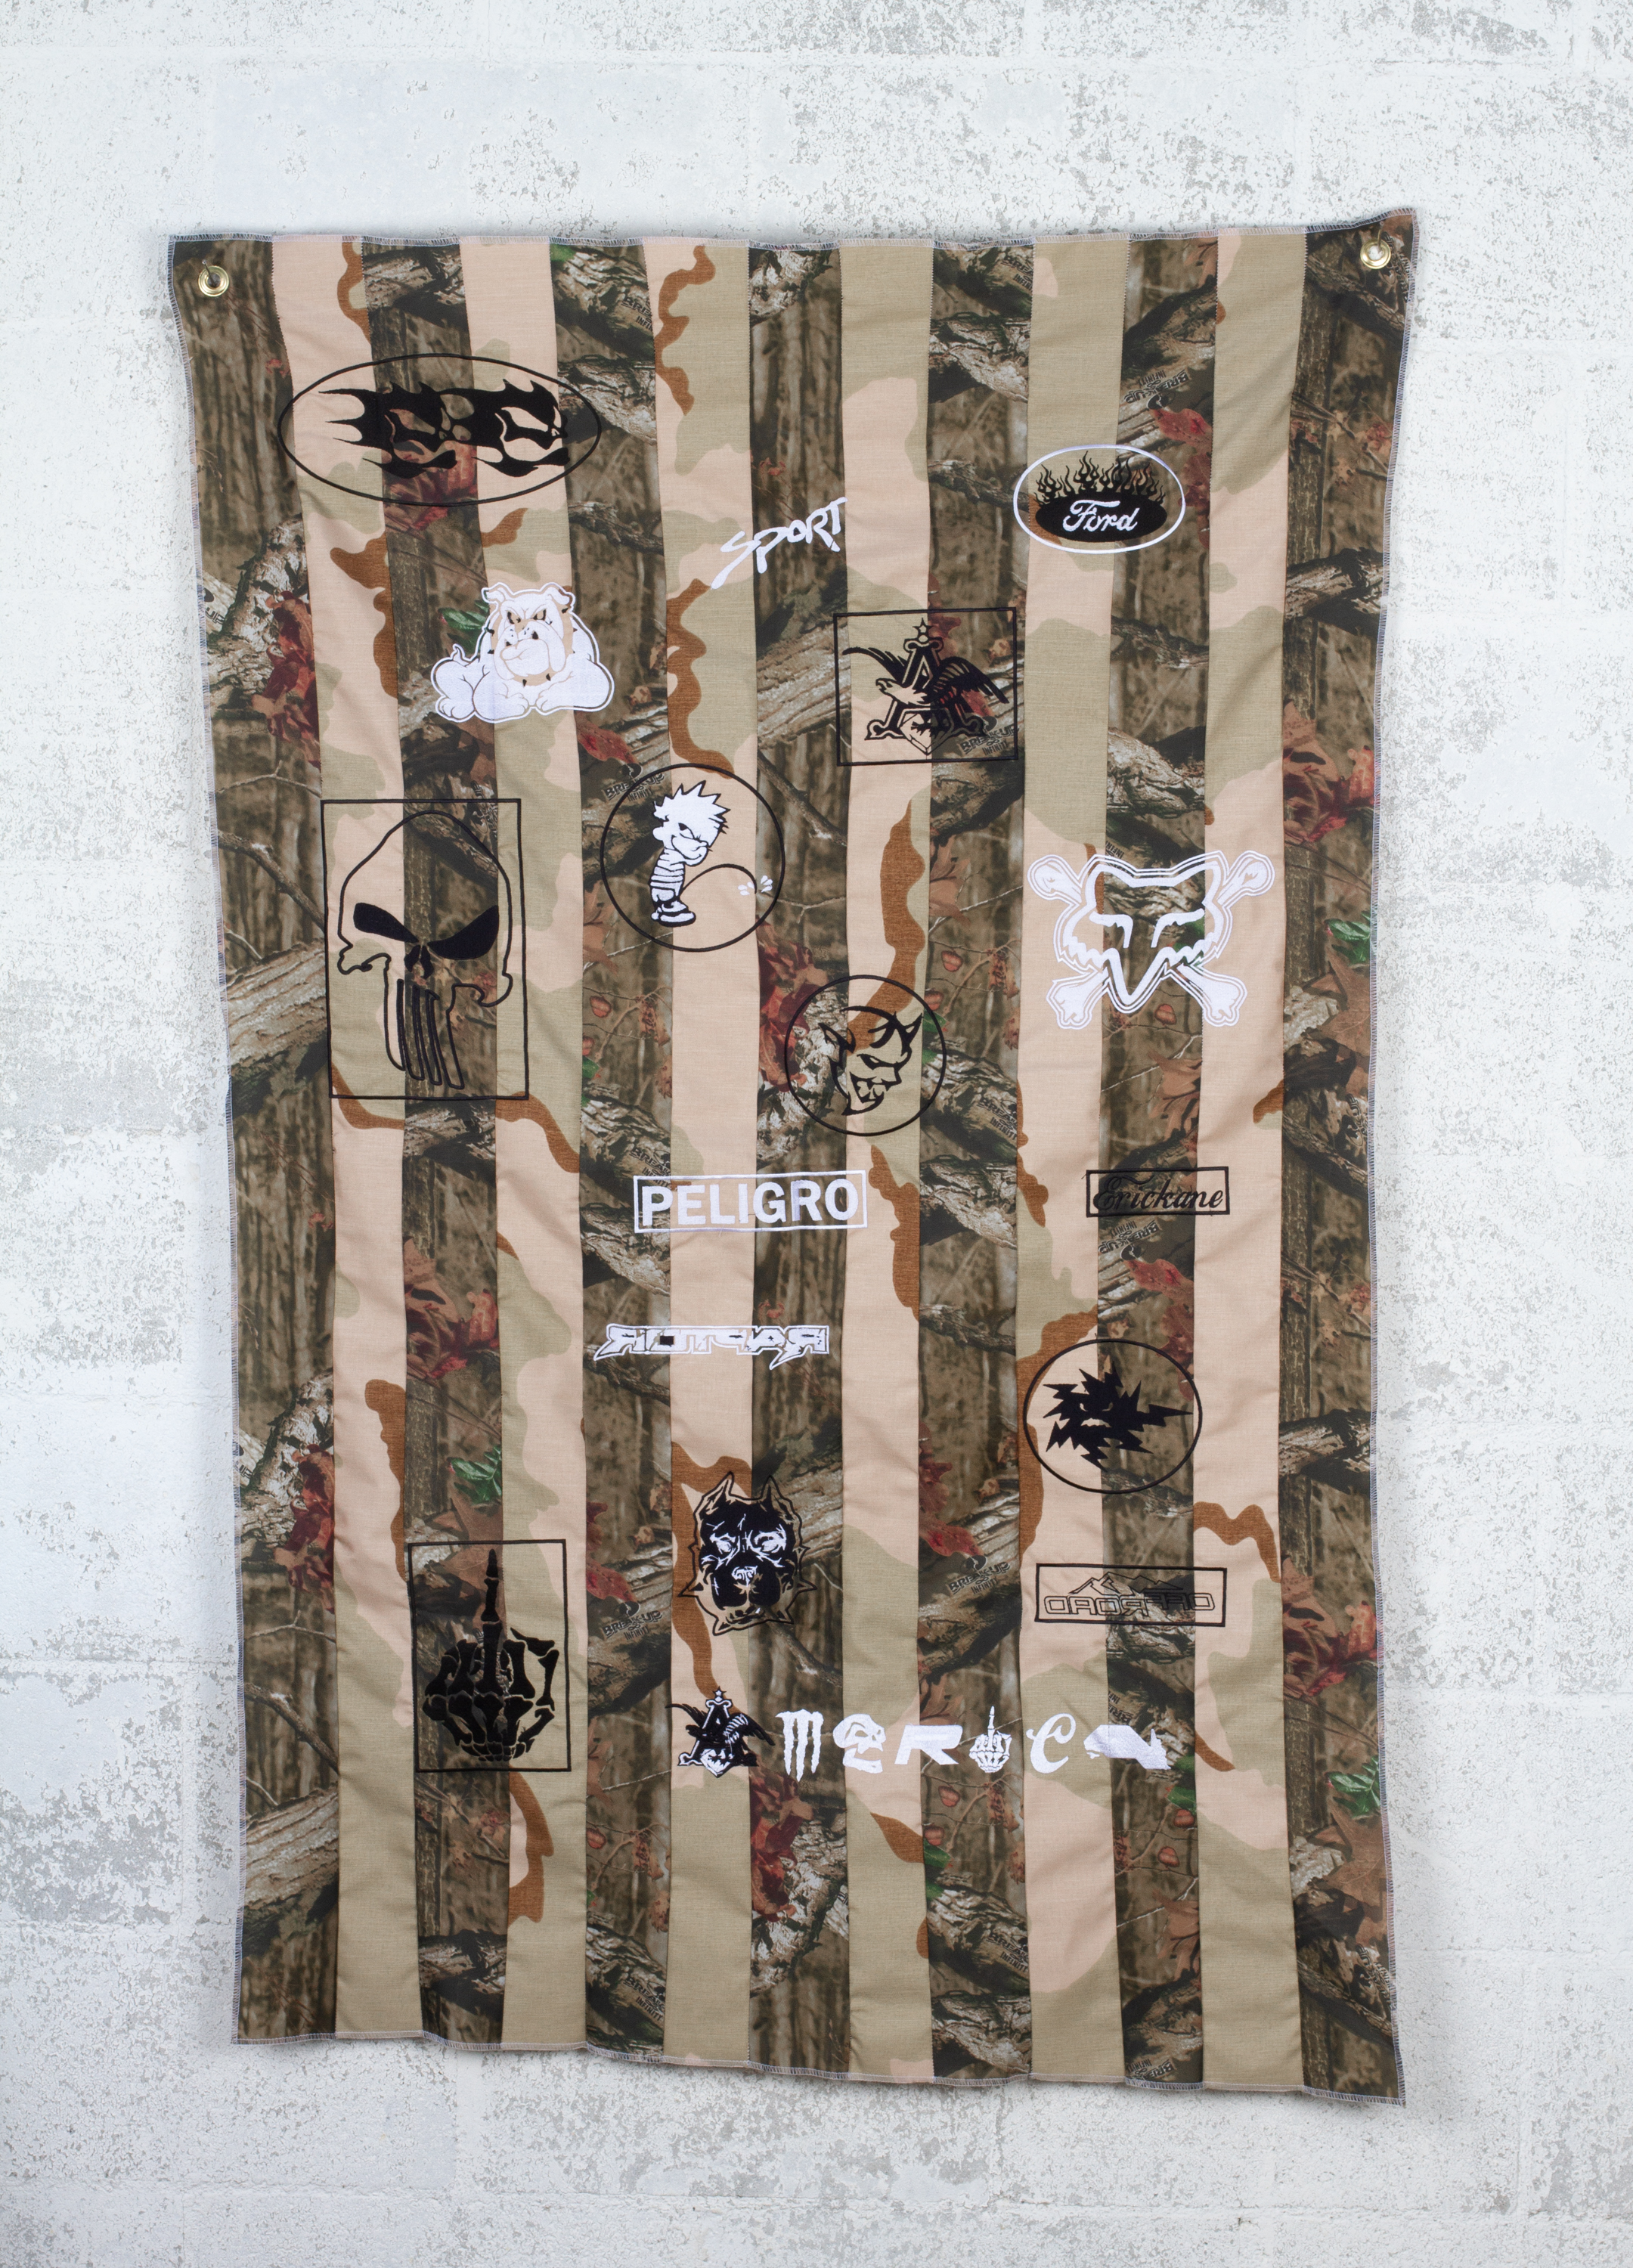 What Makes a Flag American? #1 (desert storm/break-up infinity camo), 2018  3x5 feet  fabric, embroidered logos, hardware